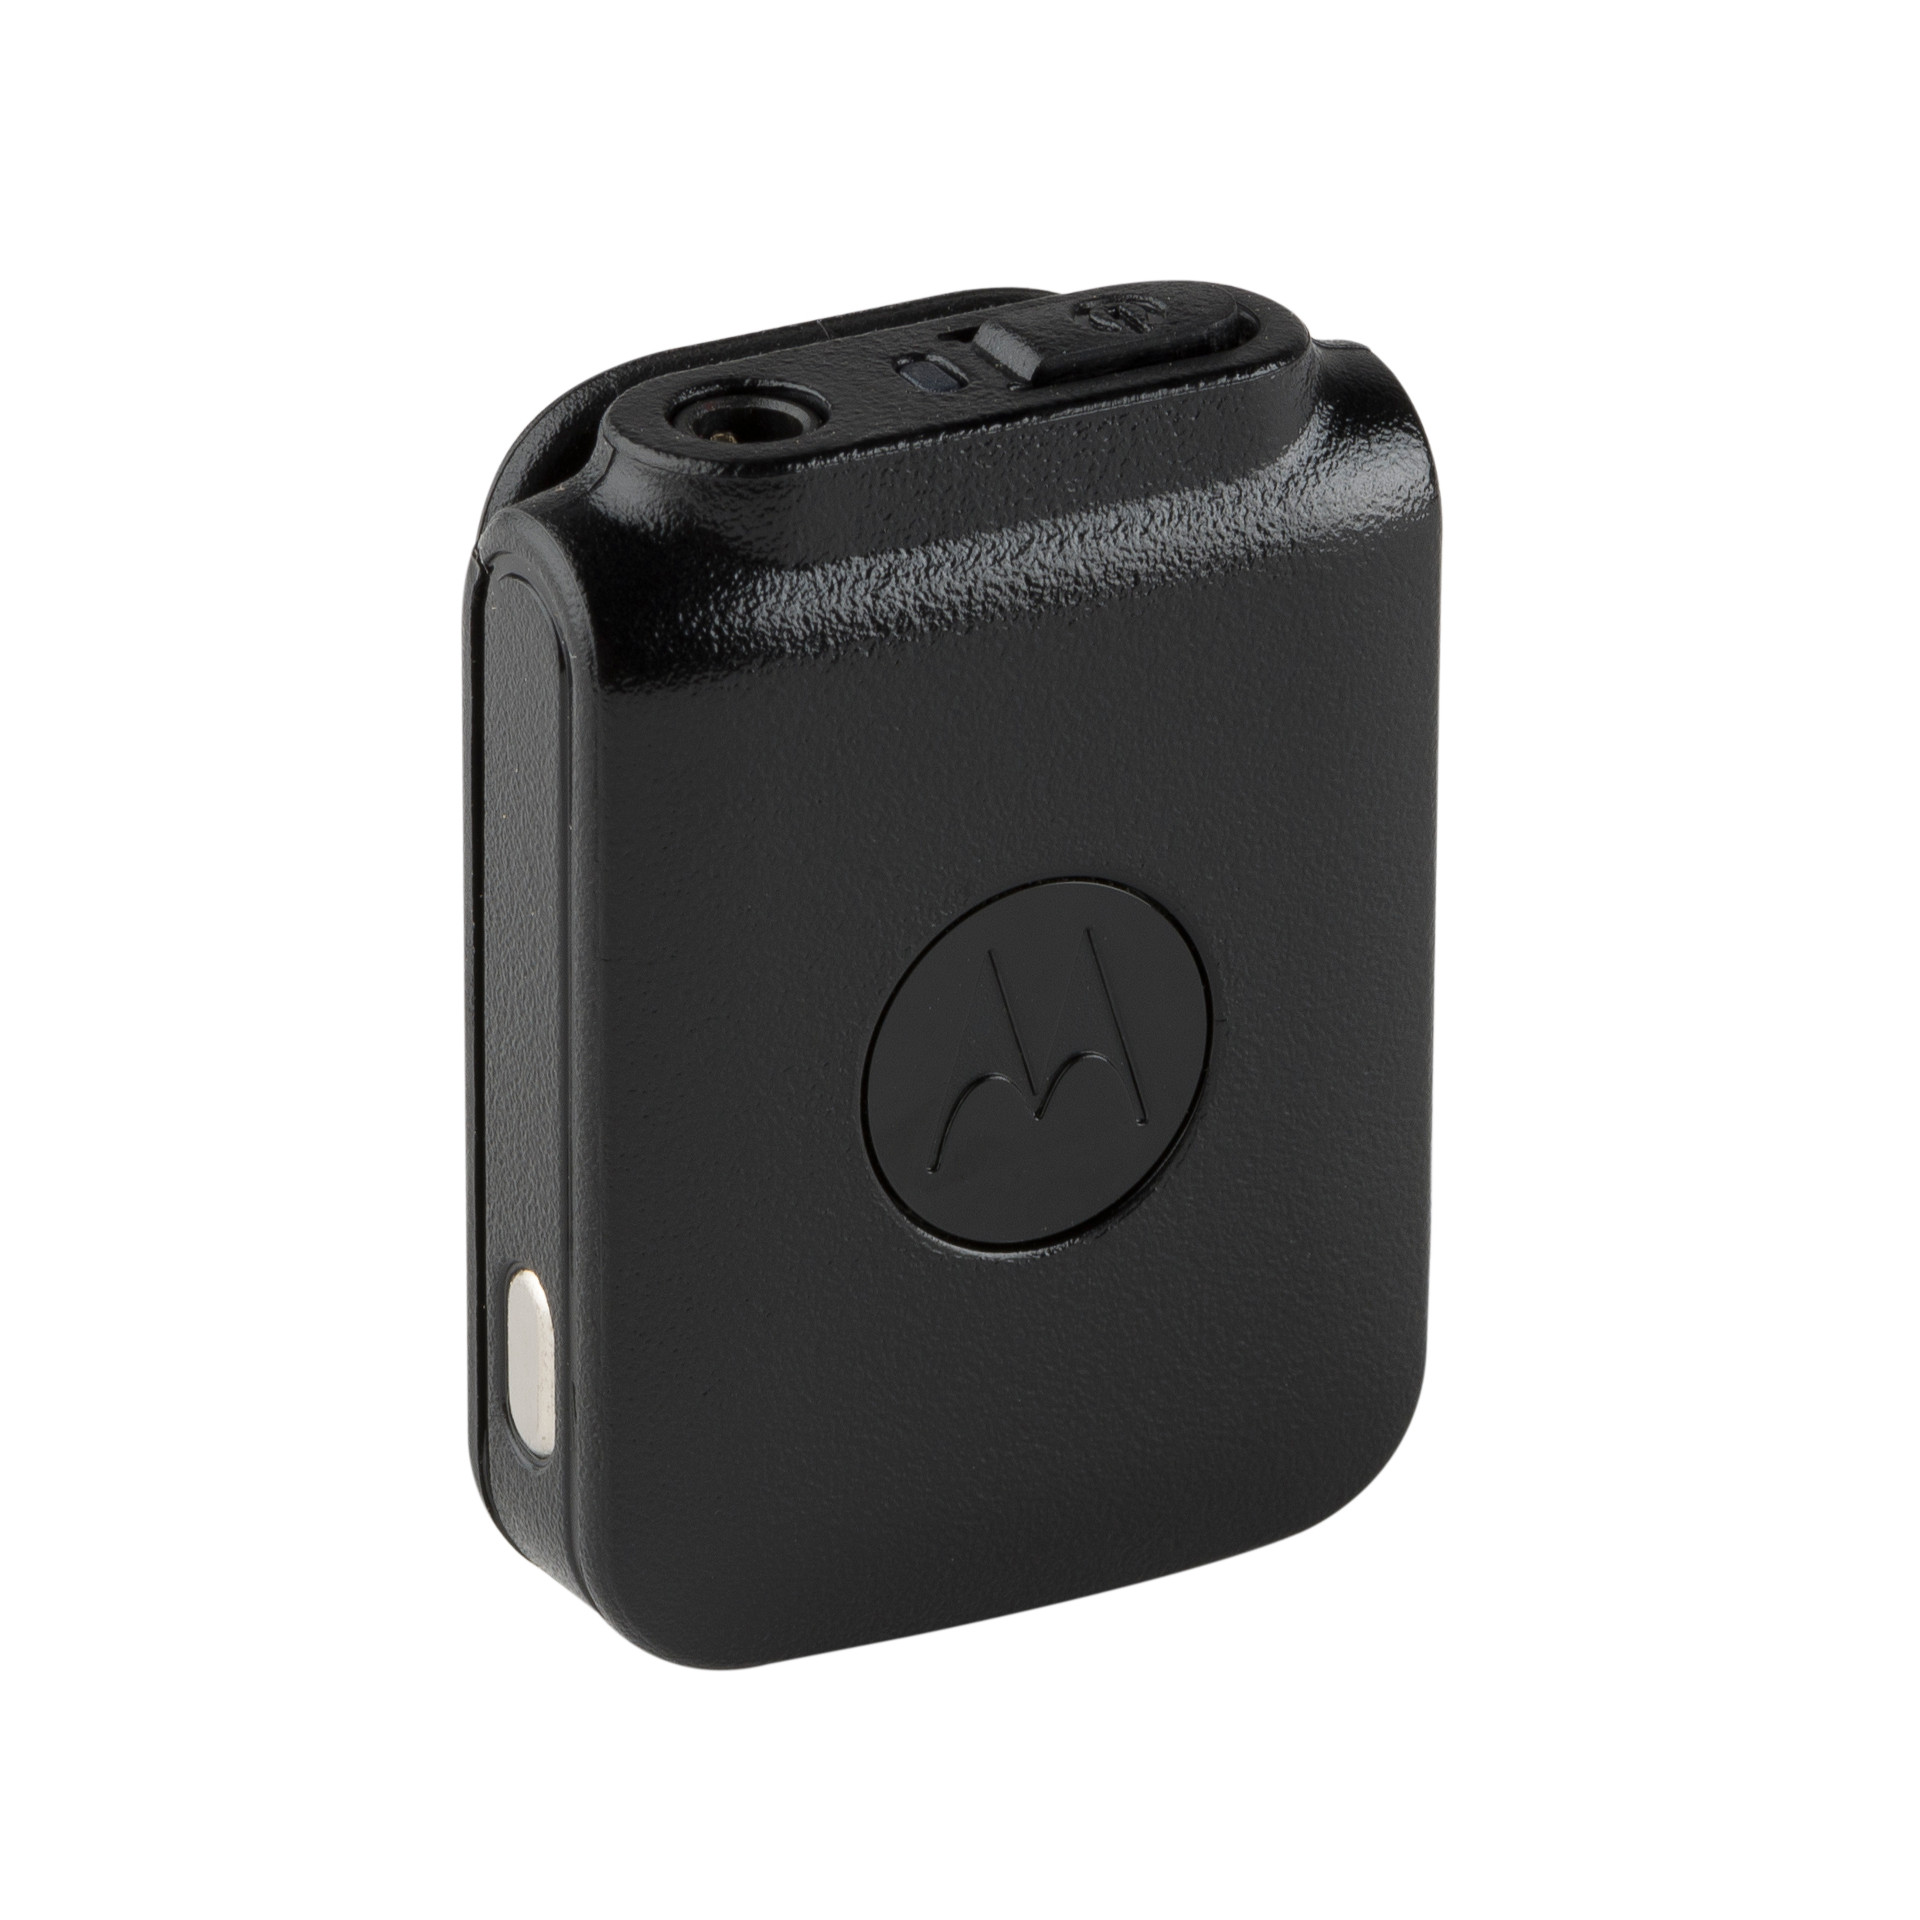 motorola HKLN4512 CLP Bluetooth Pod-HKLN4513 & HKLN4509 sold separately